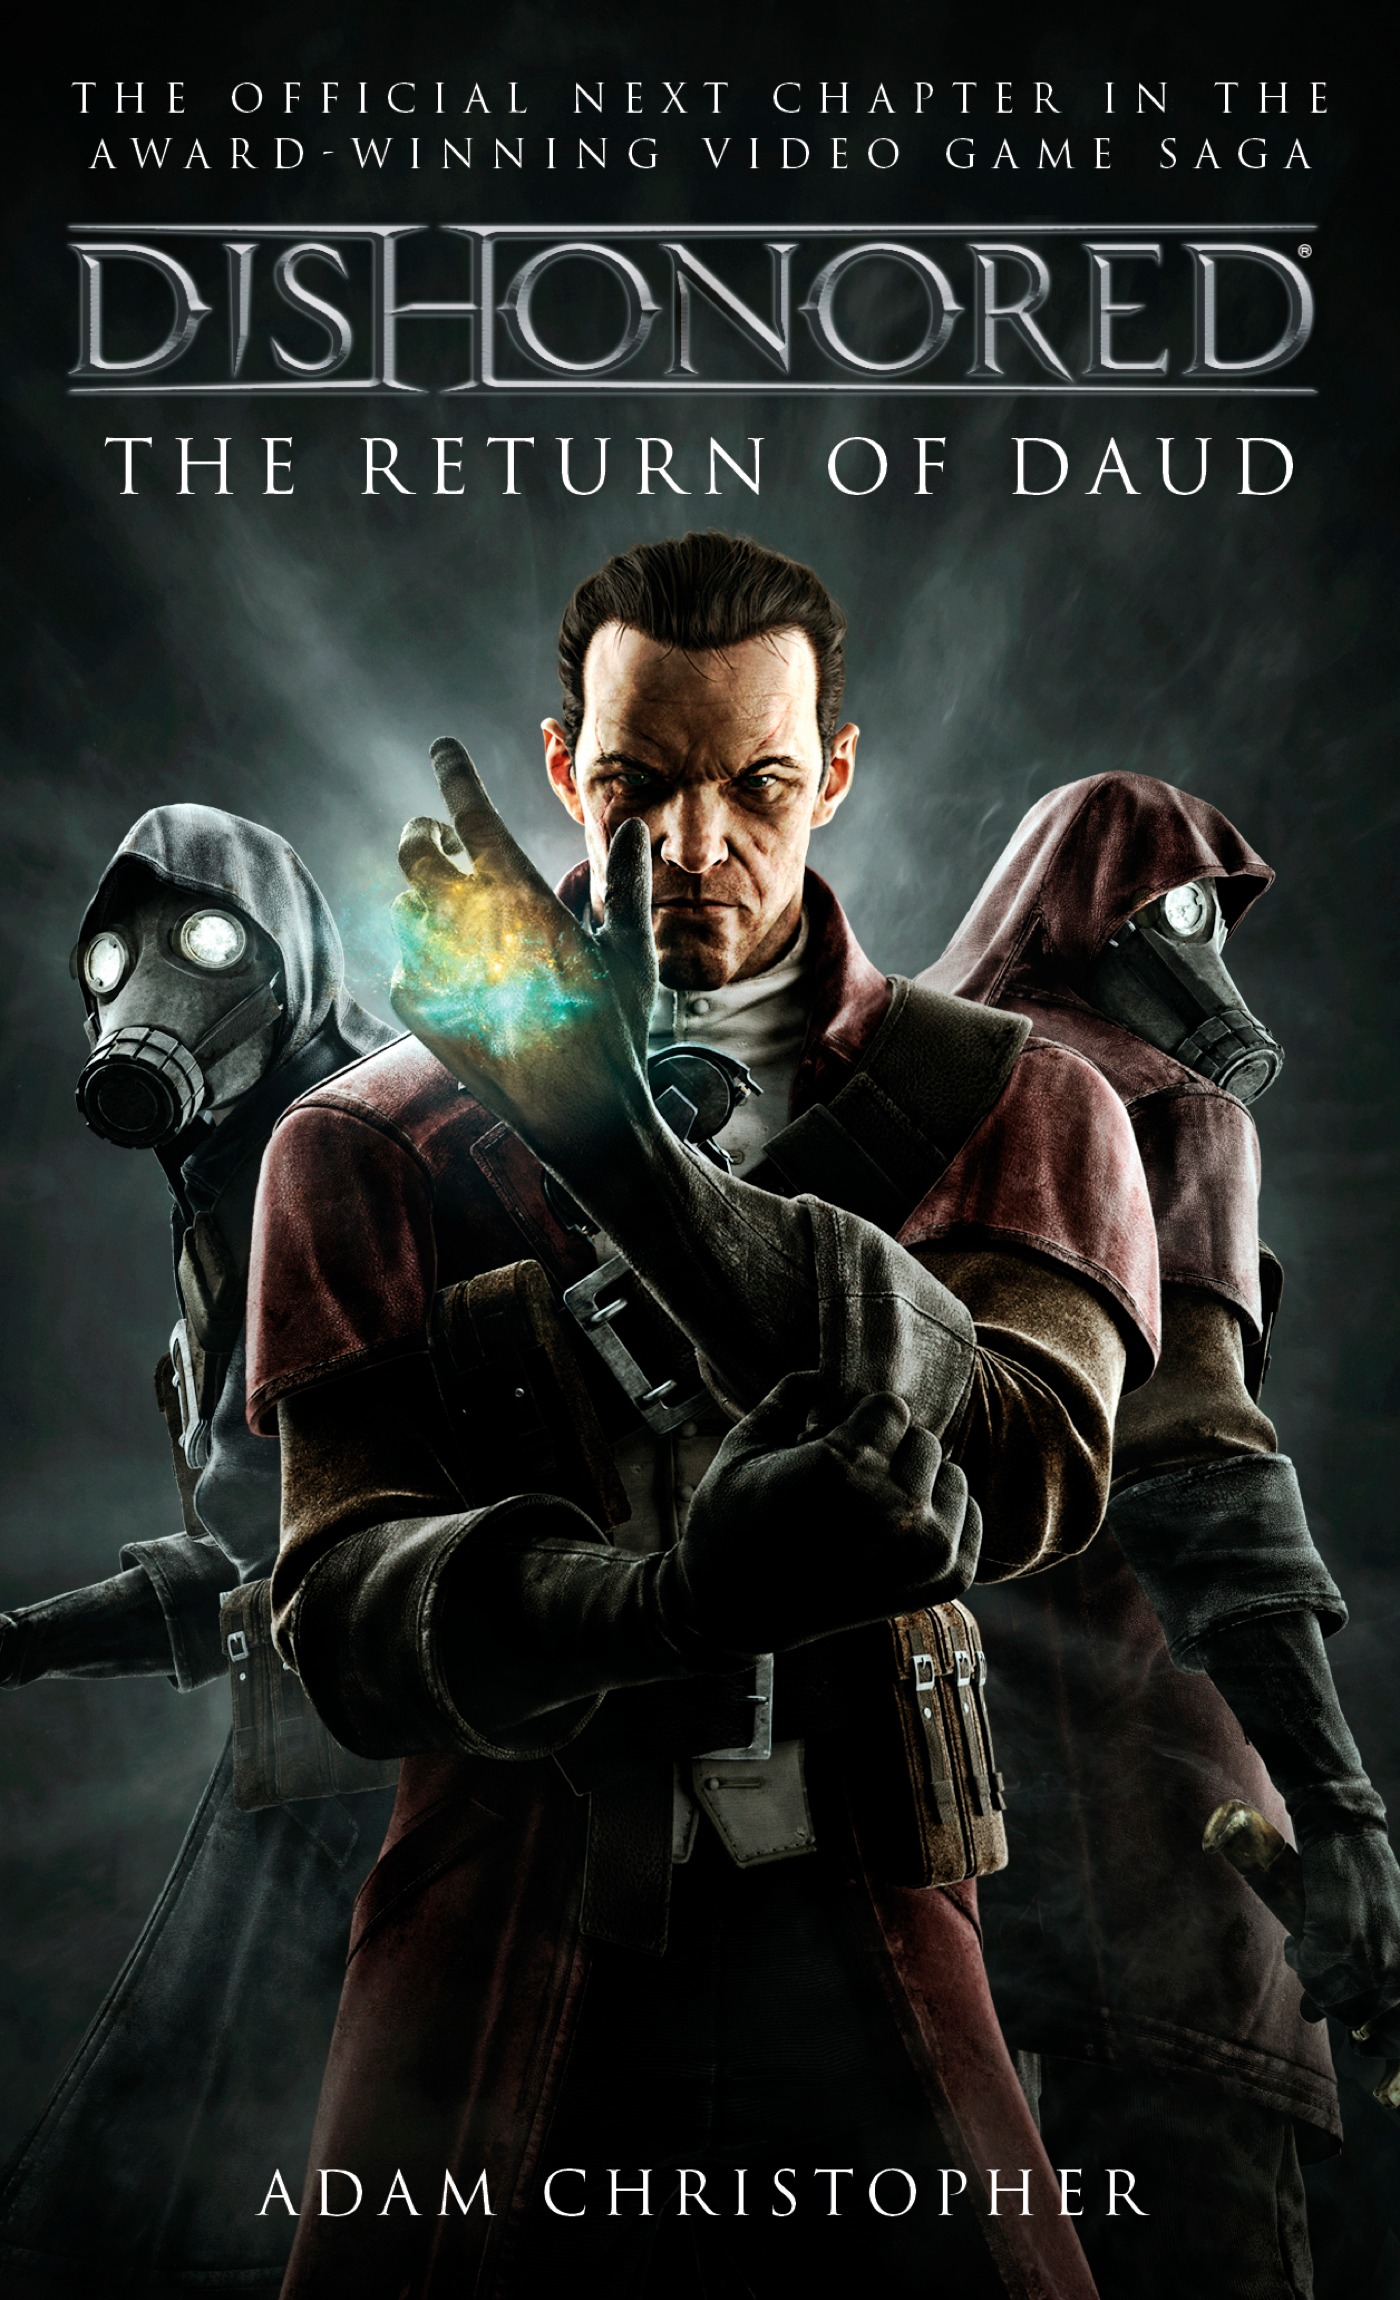 Dishonored - The Return of Daud